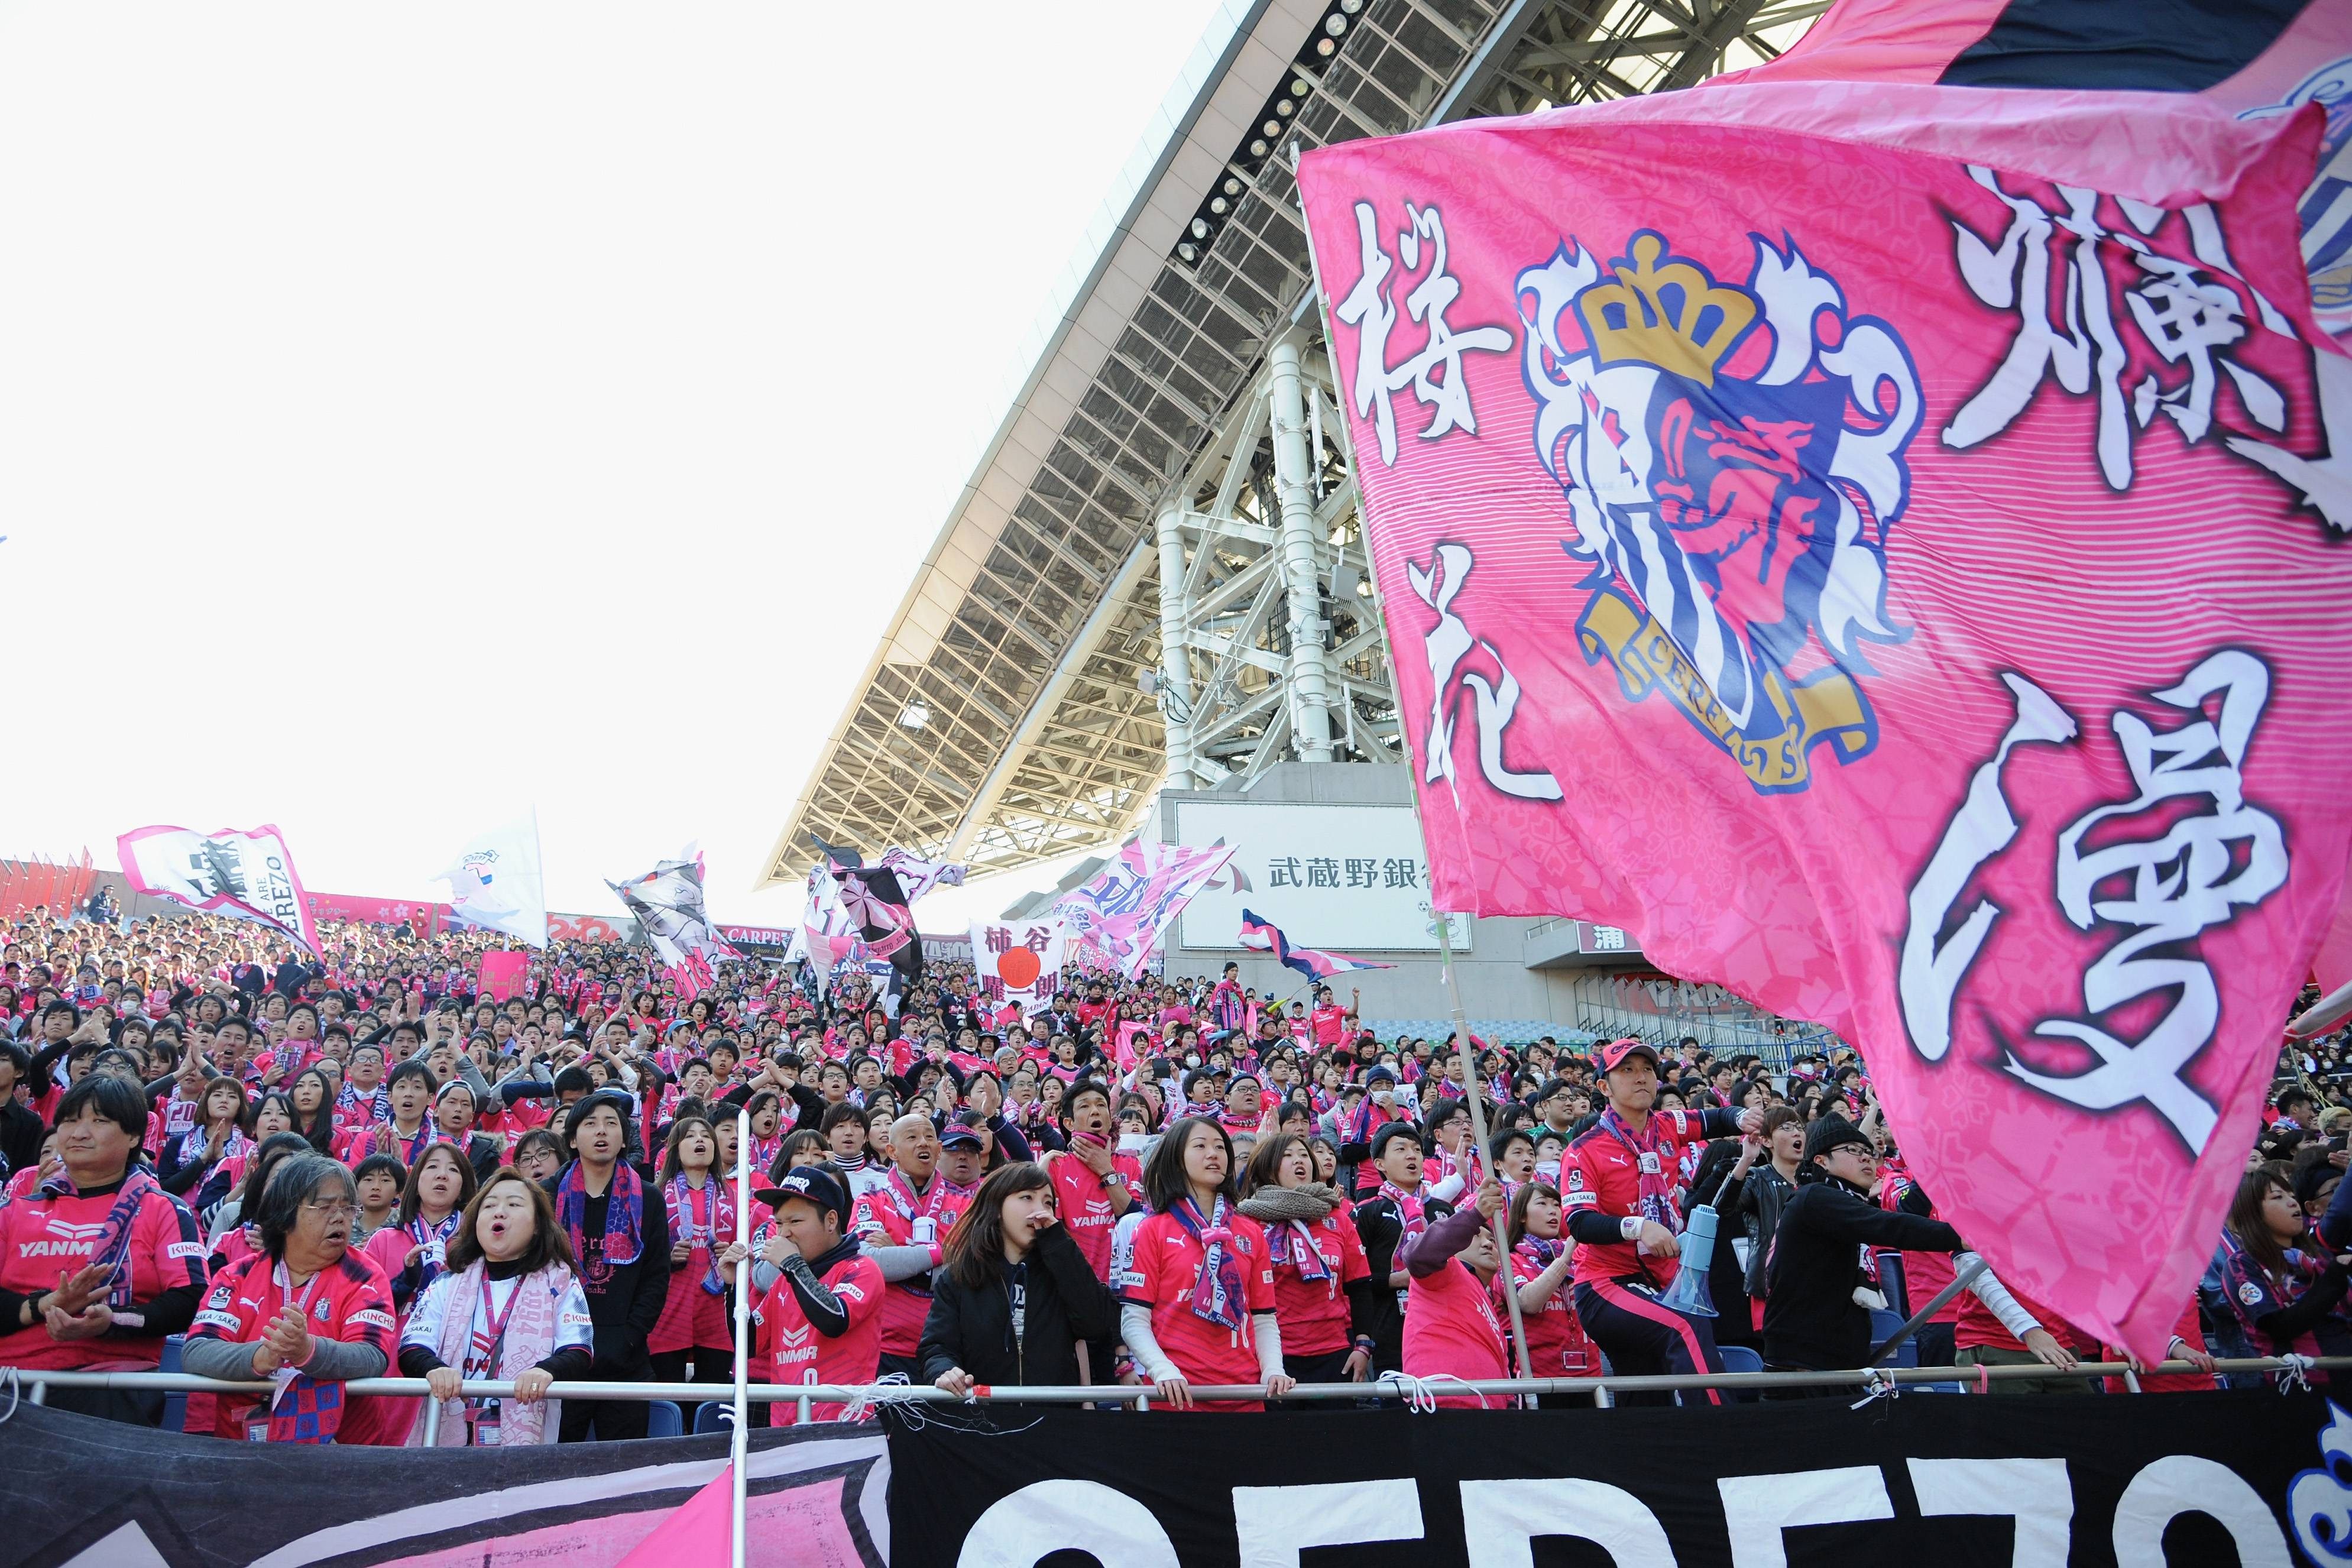 Cerezo's exit marks worst ACL showing for Japanese clubs since 2013